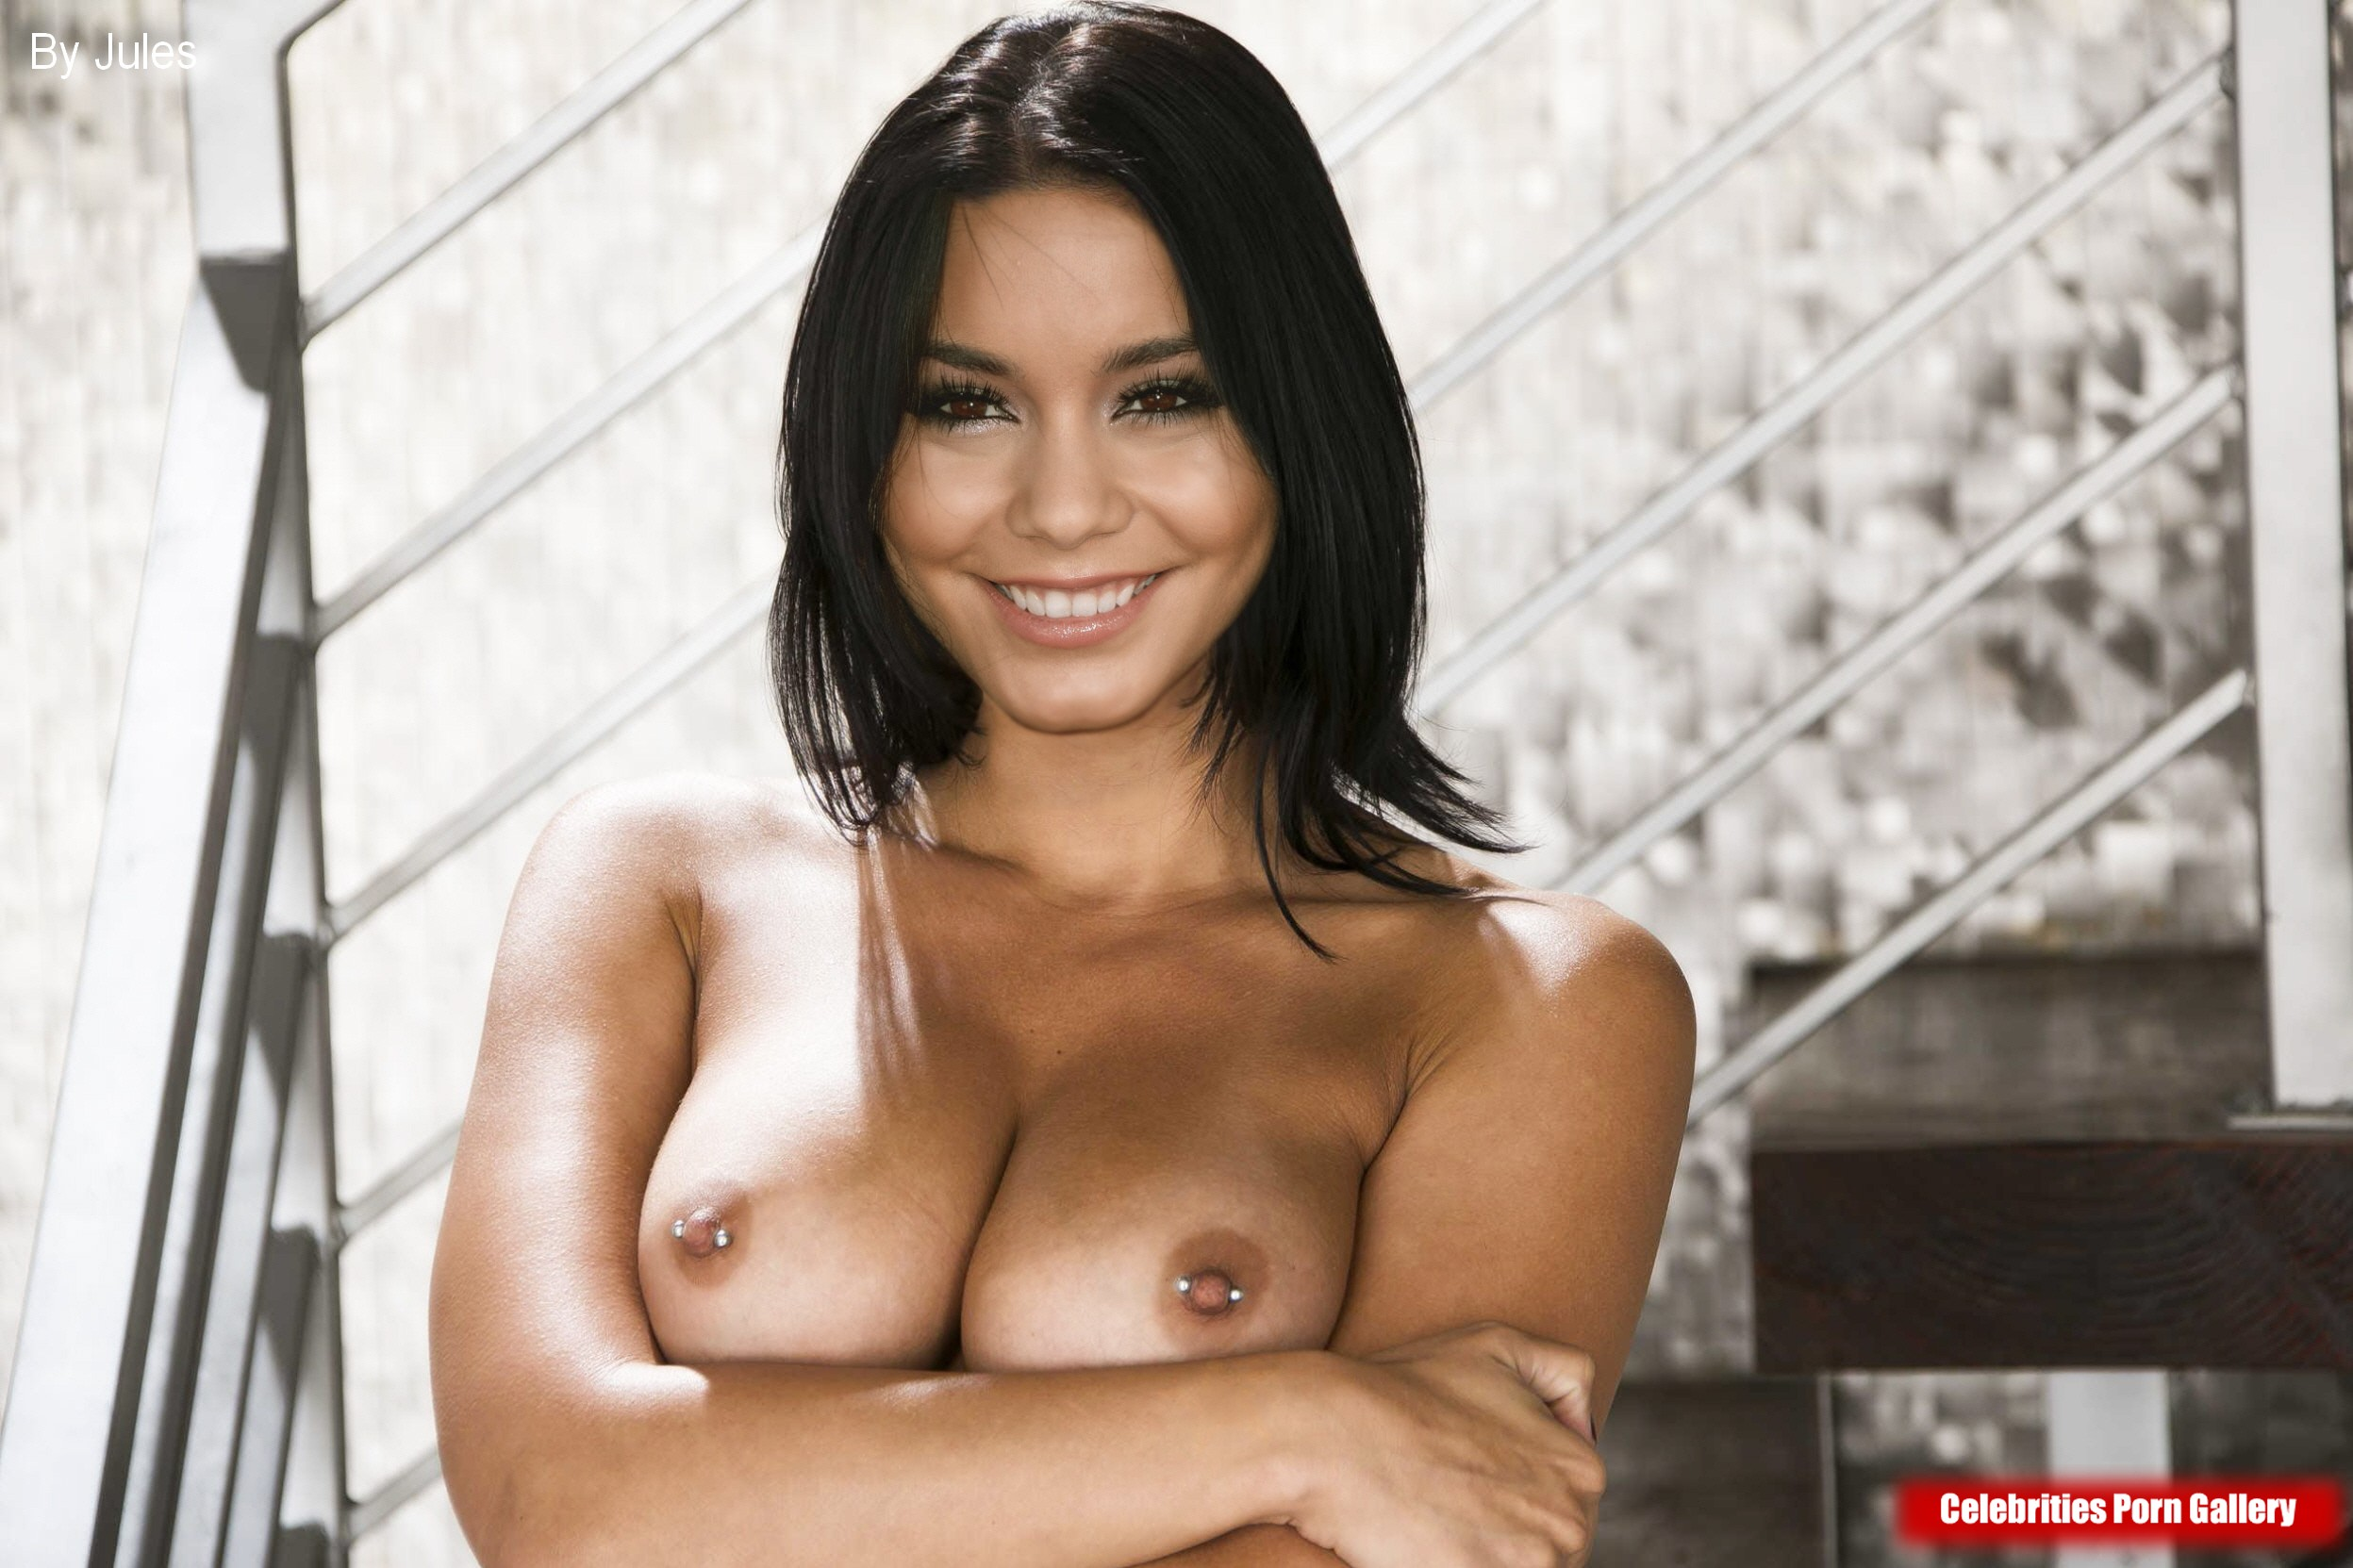 Kim Kardashian, Vanessa Hudgens Targeted In New Nude Photo Leak